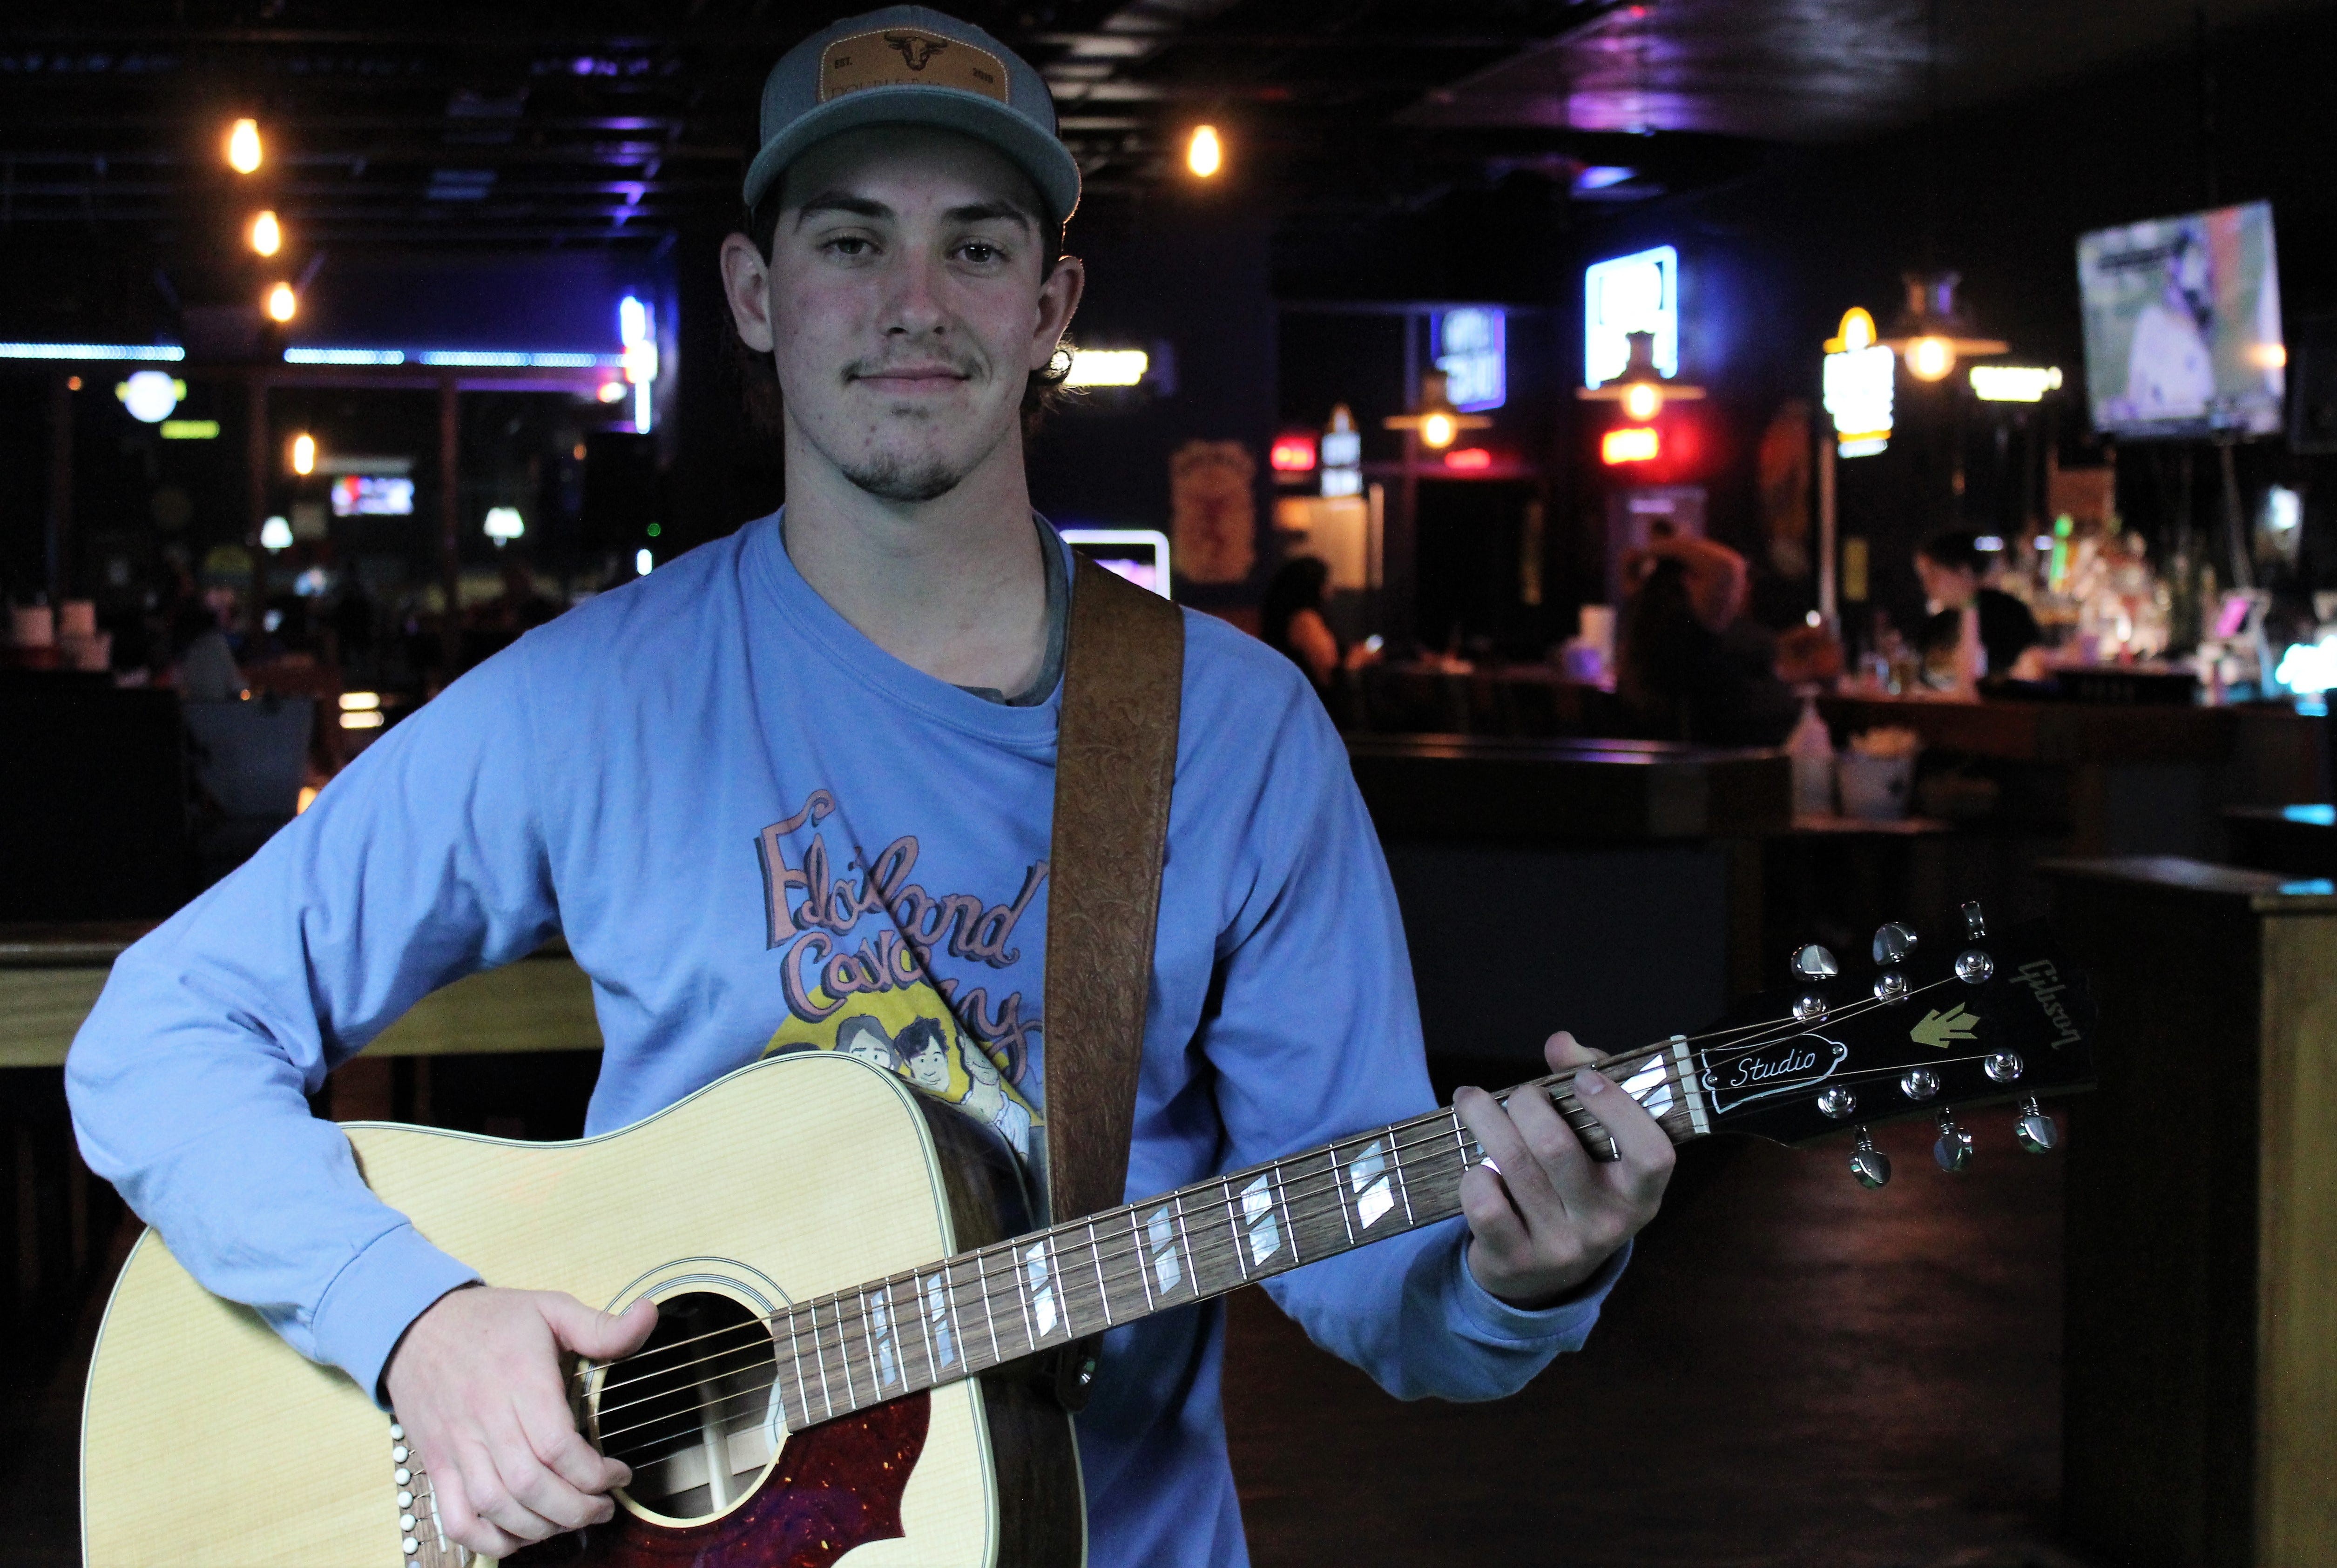 Diamond in the rough: Singer-songwriter Patterson steps to the plate during pandemic